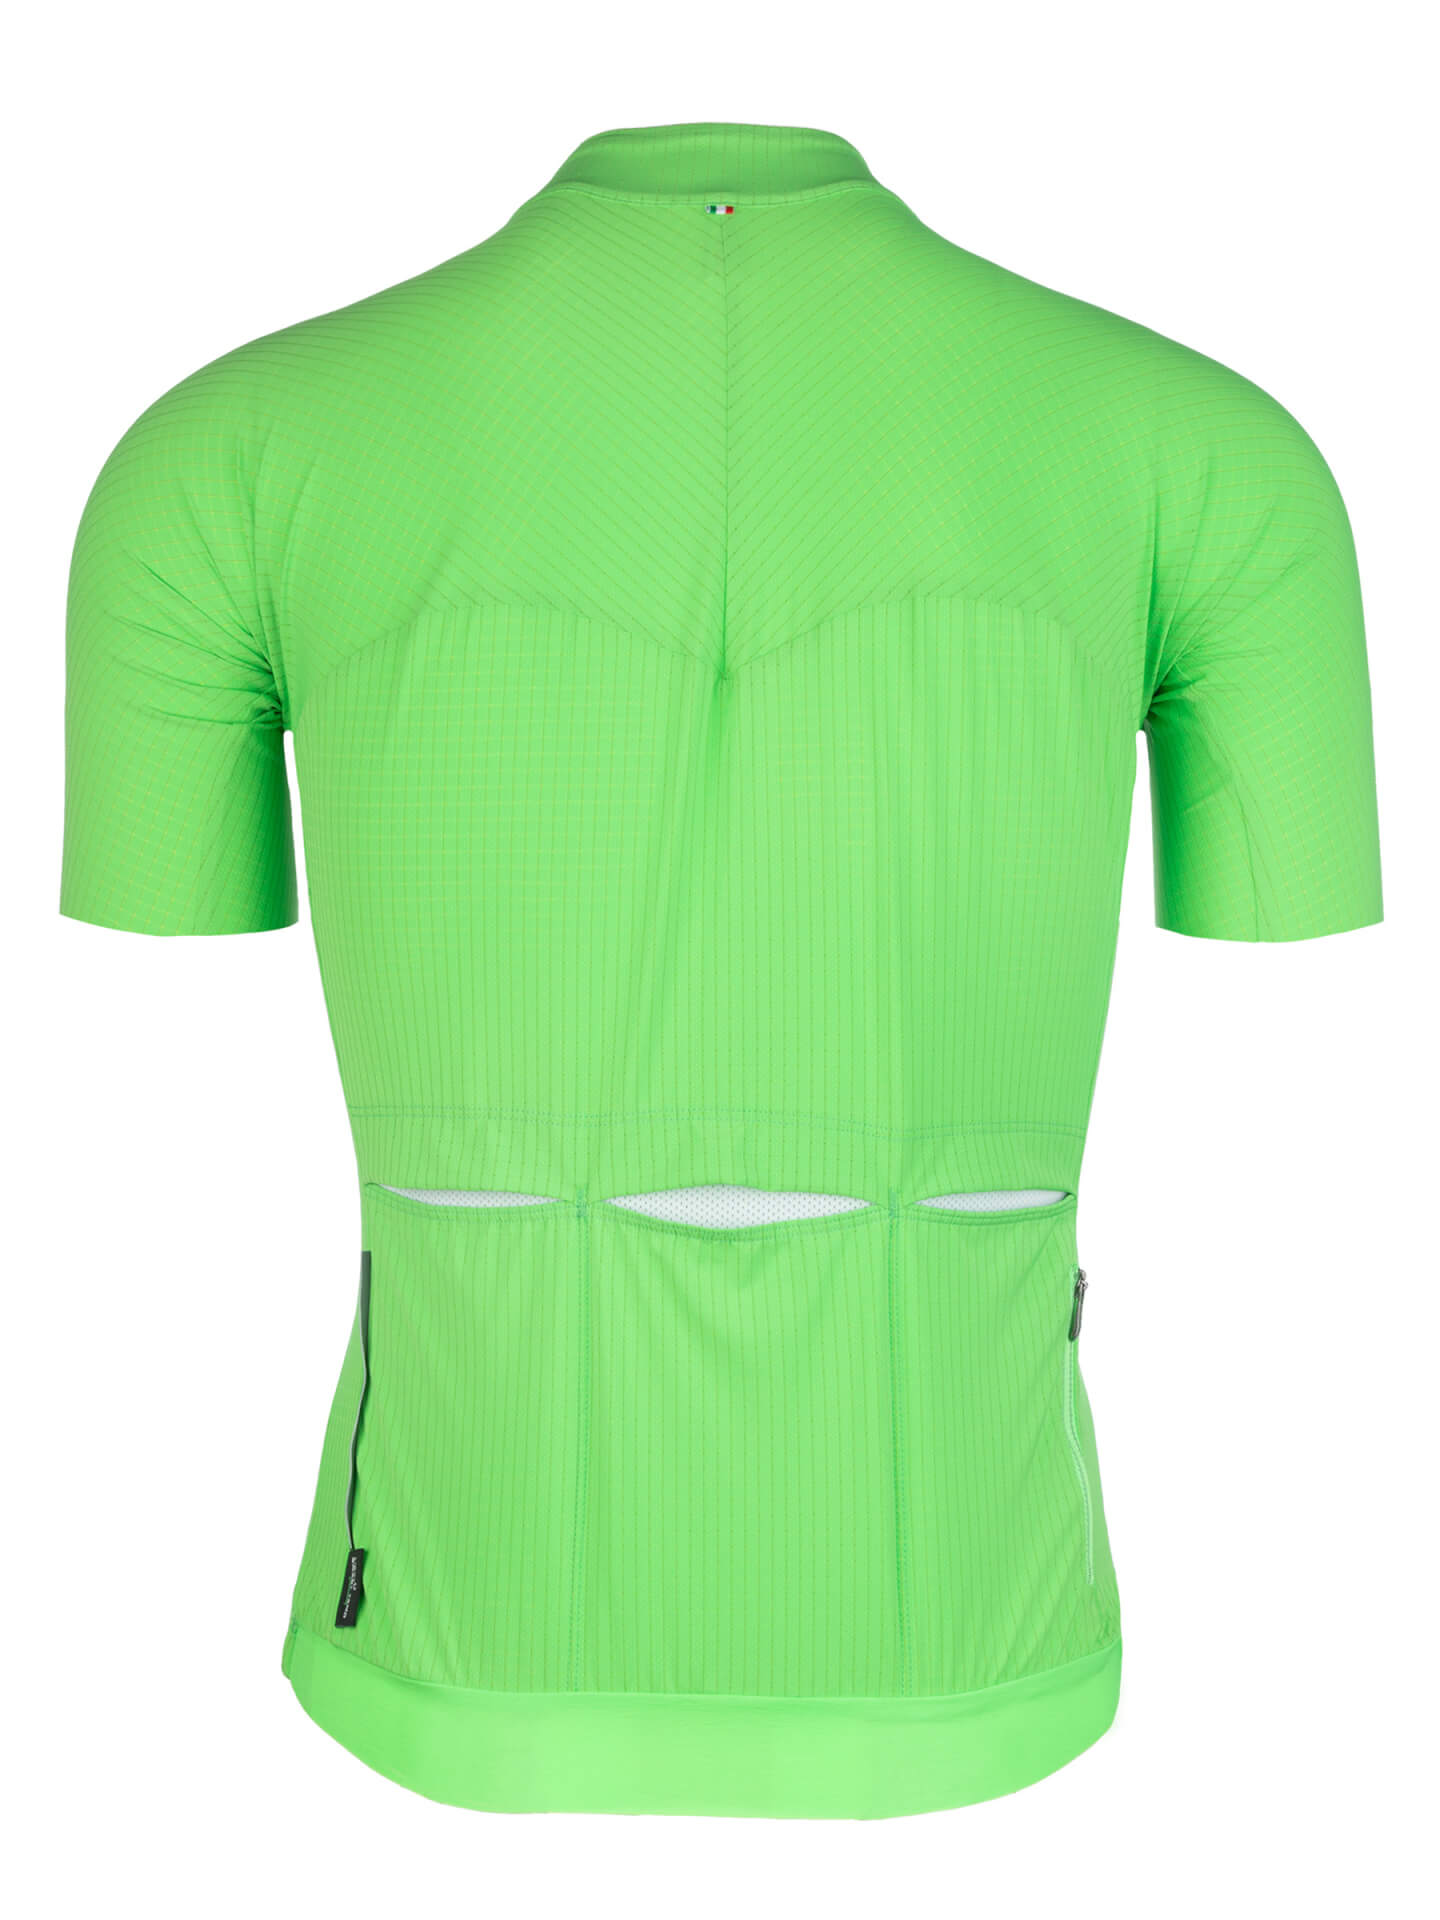 Maillot manches courtes L1 Pinstripe X vert